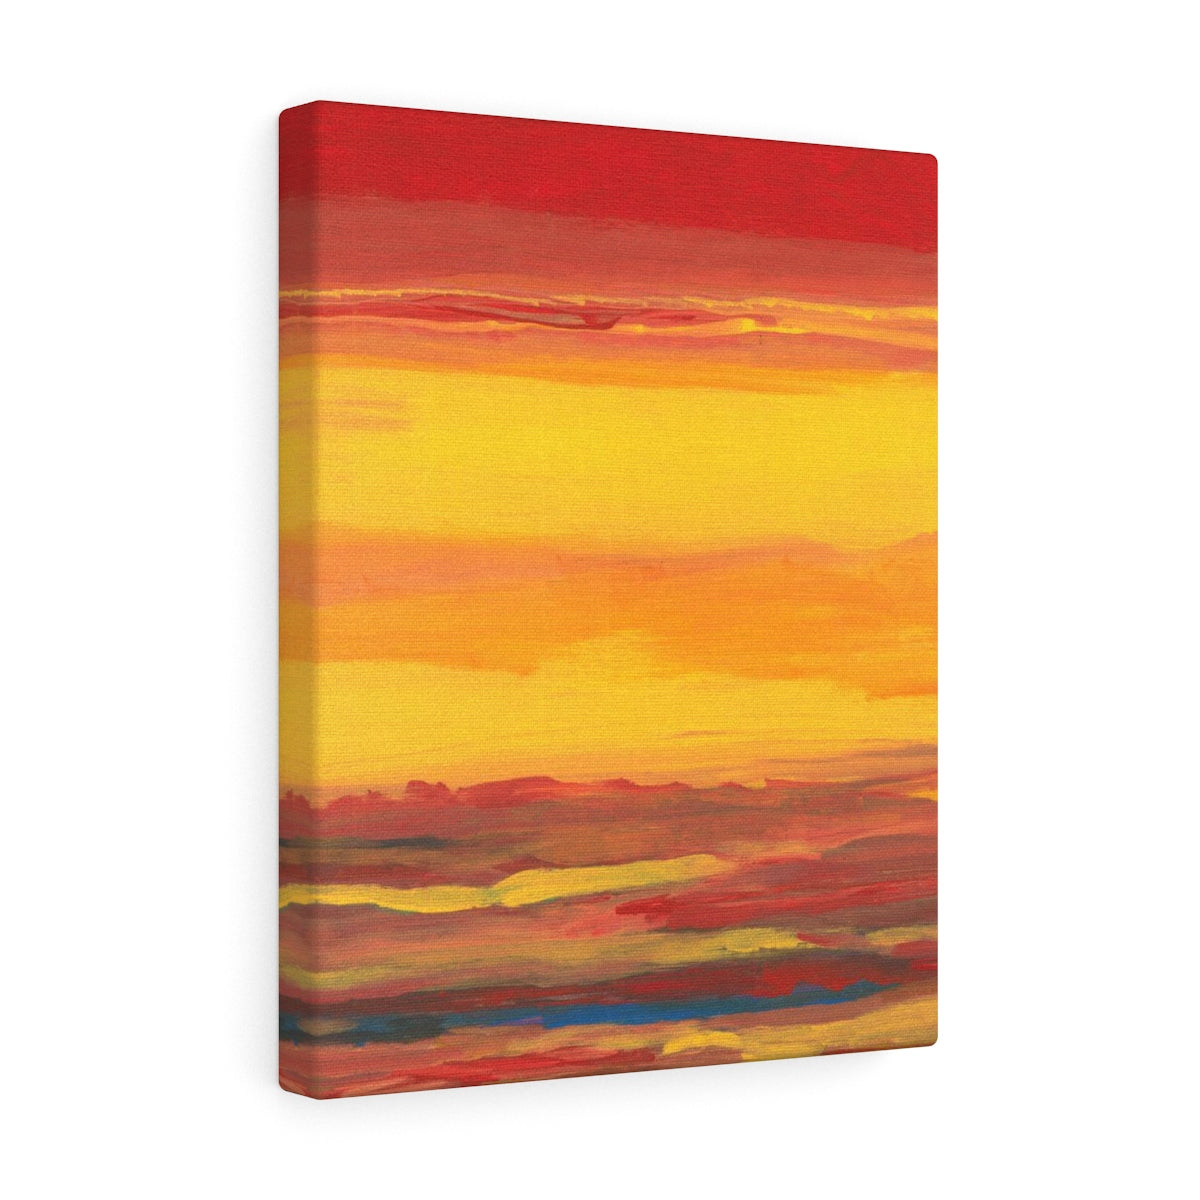 "SUNRISE  SUNSET  Canvas Gallery Wraps  18"" x 24"""